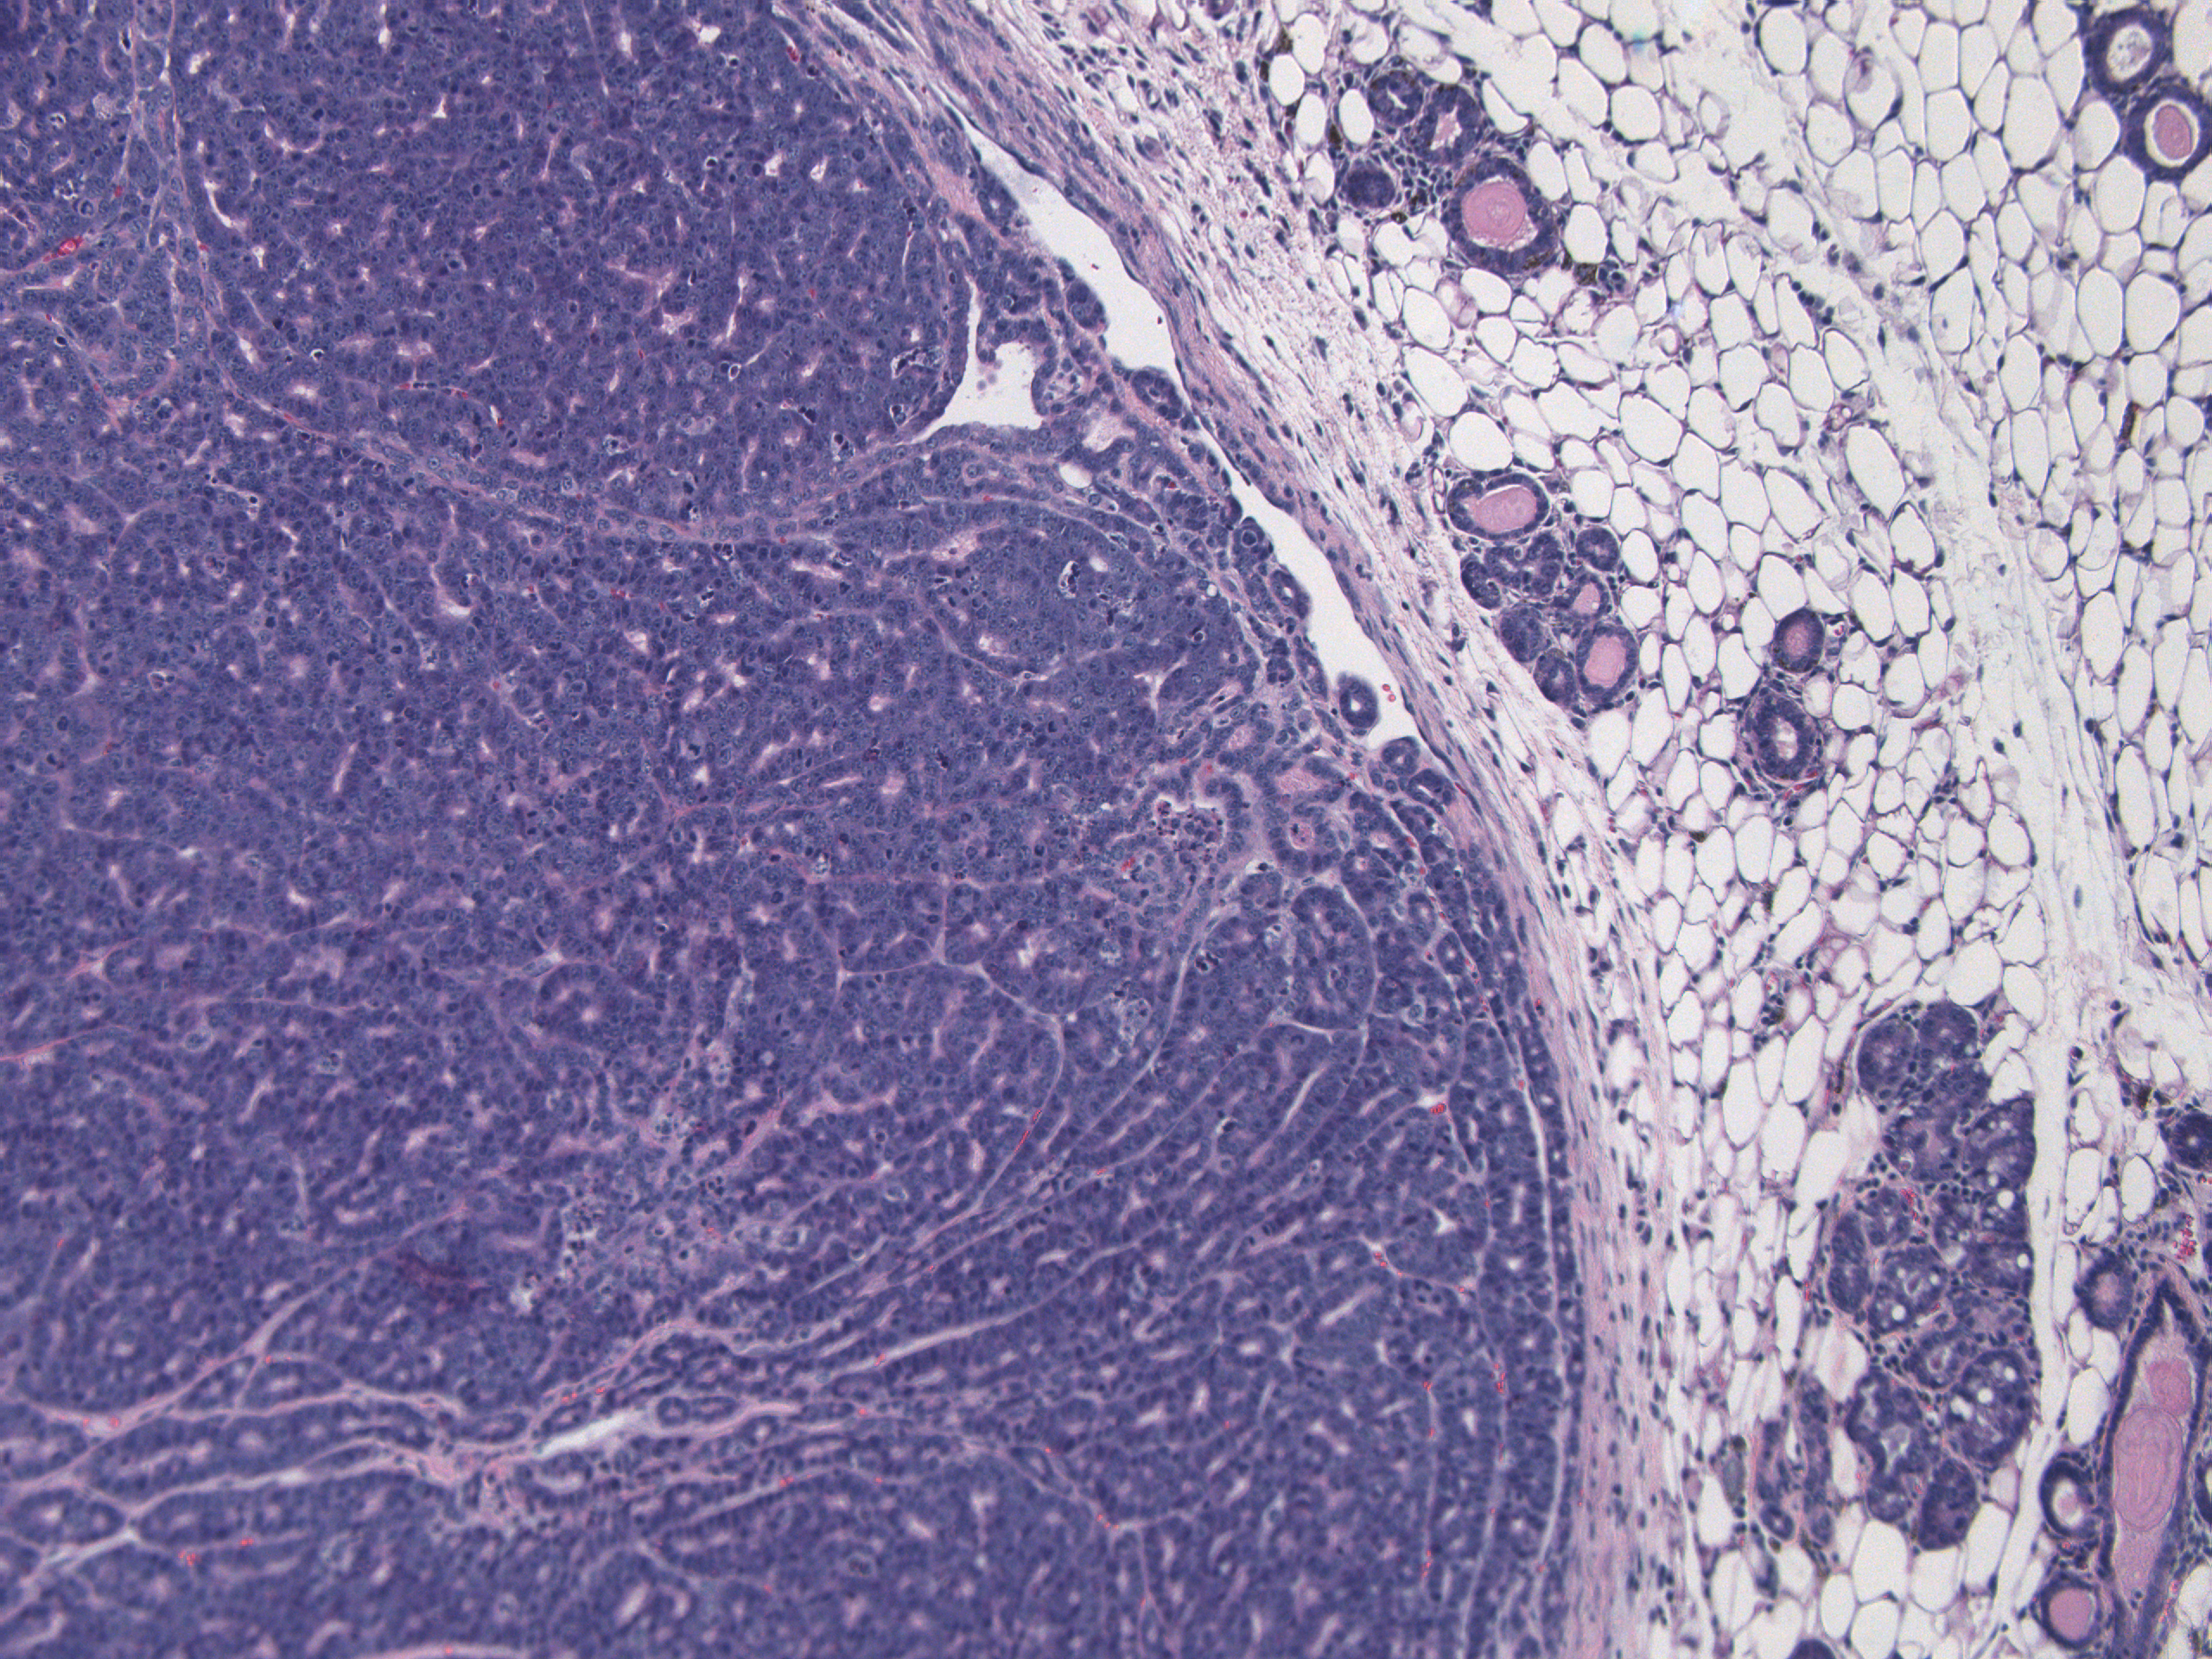 Boundary between tumor and normal